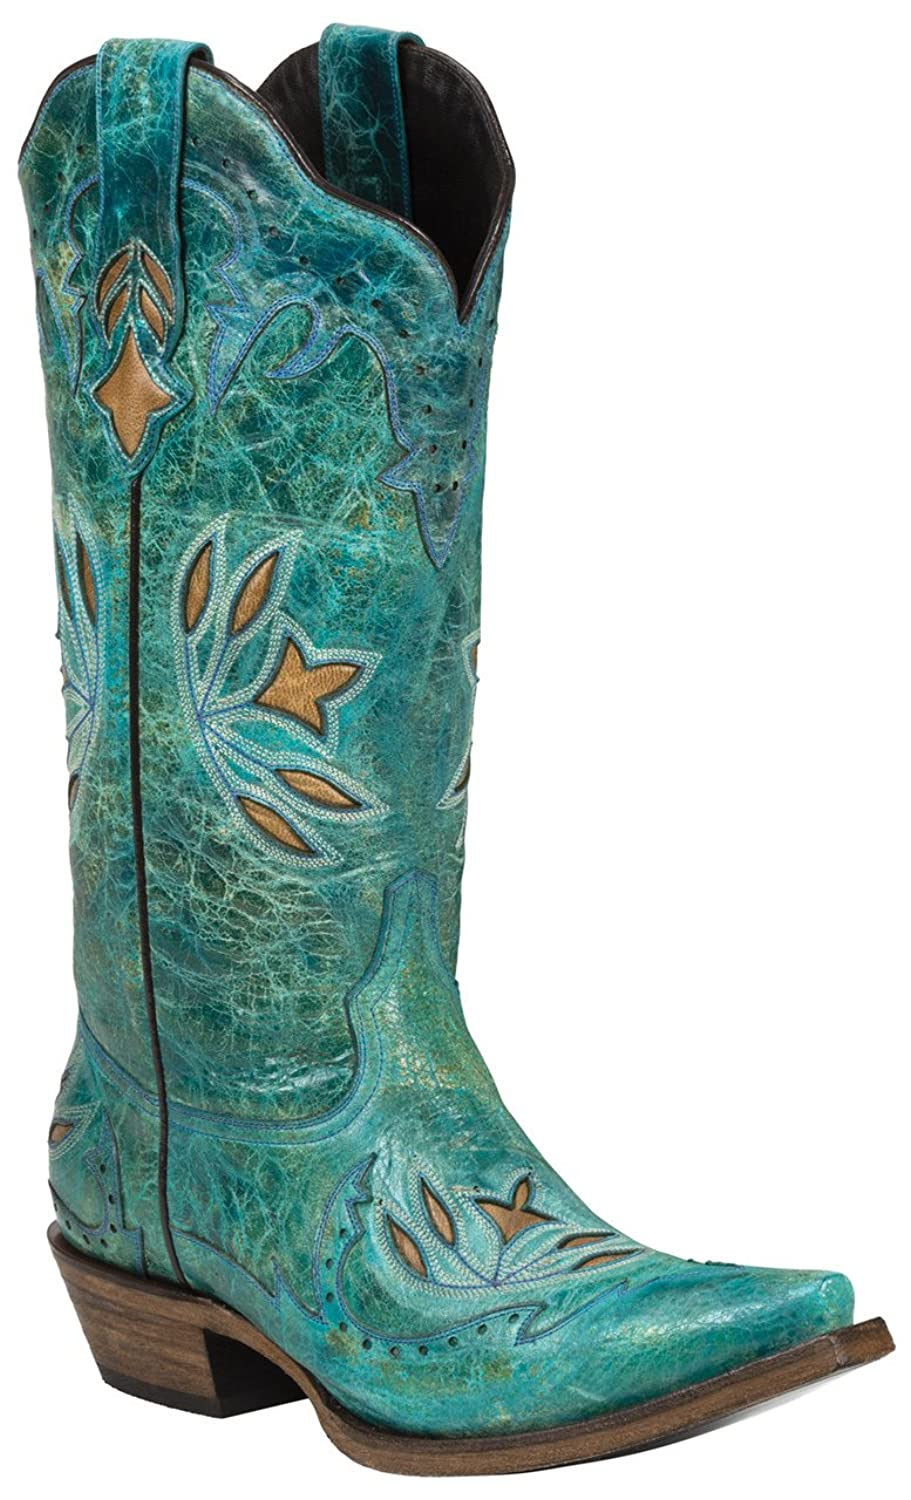 MEDINA (Turquoise) Women's Cowboy Boots